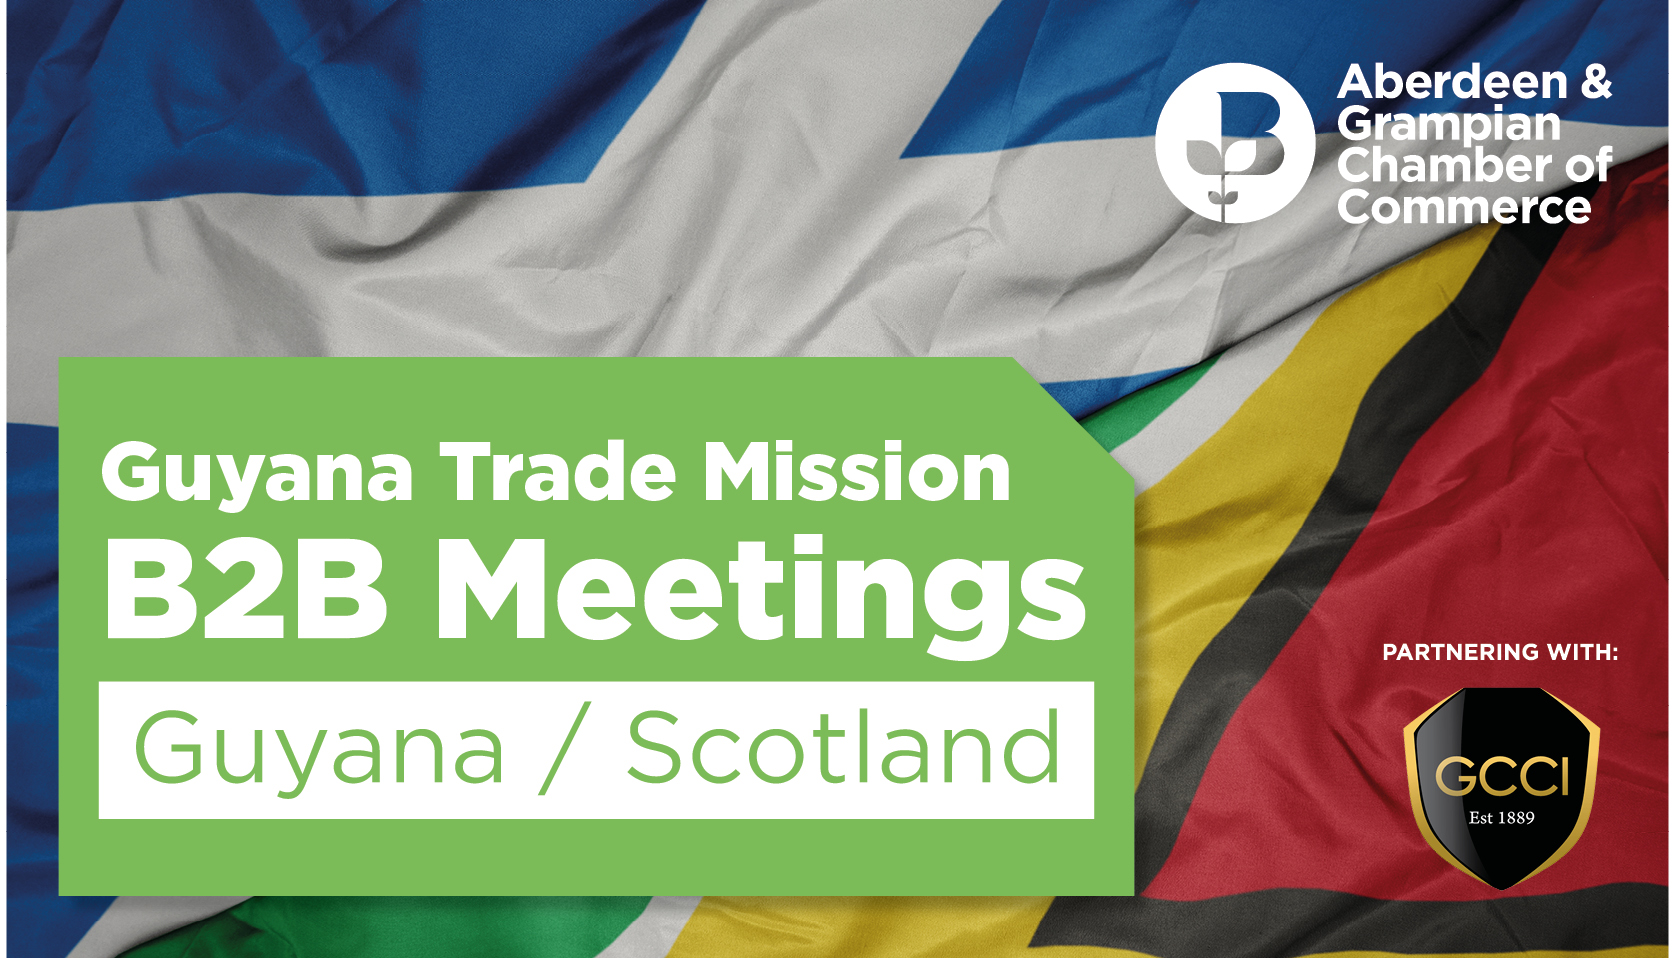 Guyana Trade Mission - B2B Meetings